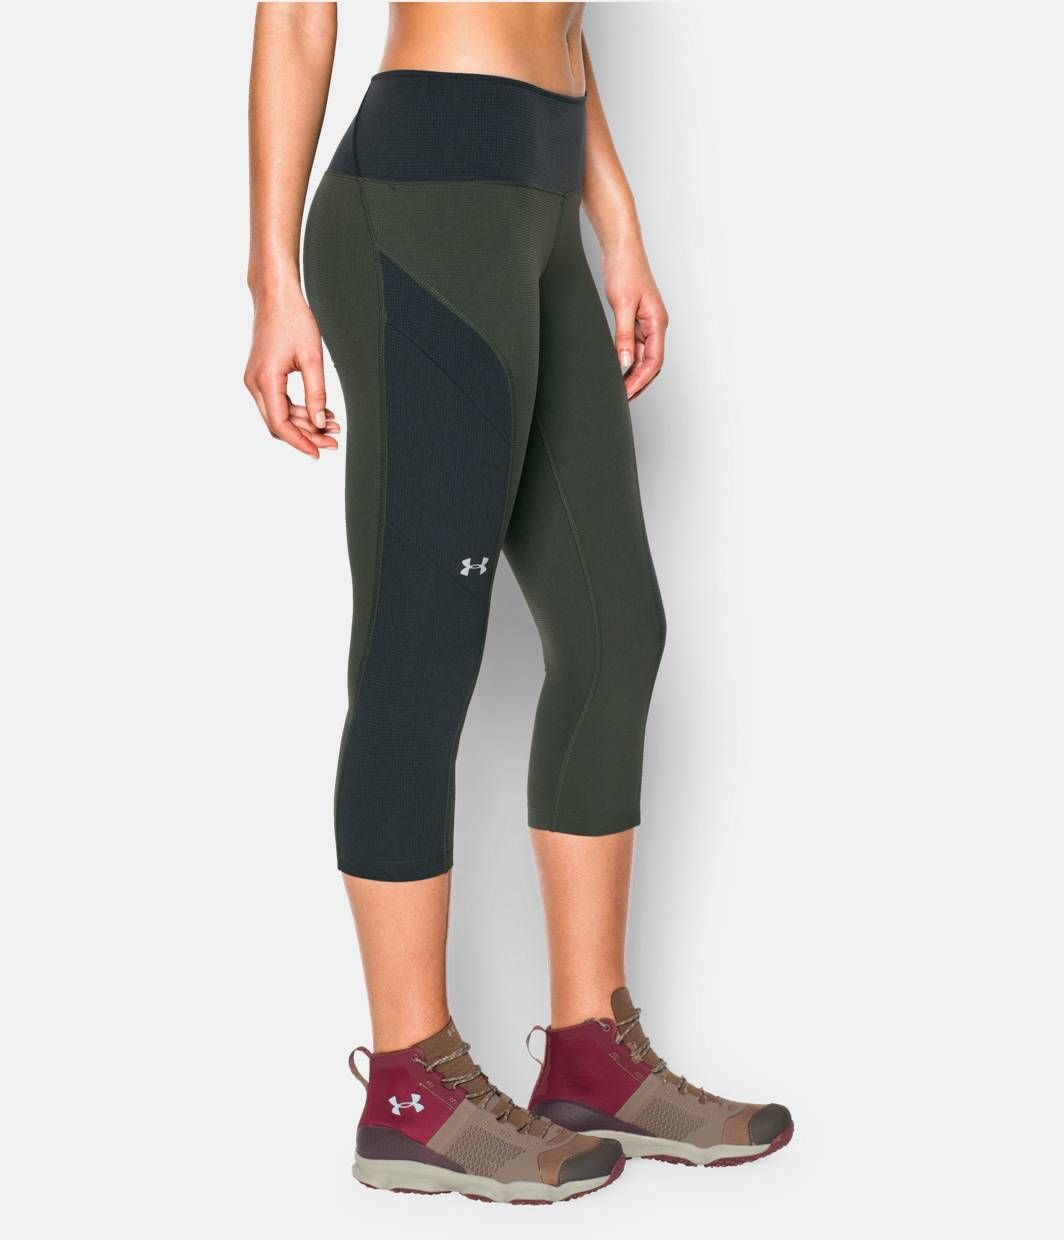 fef9decd400 Shop Under Armour for Women s UA ArmourVent™ Trail Capri in our Womens  Bottoms department. Free shipping is available in US.